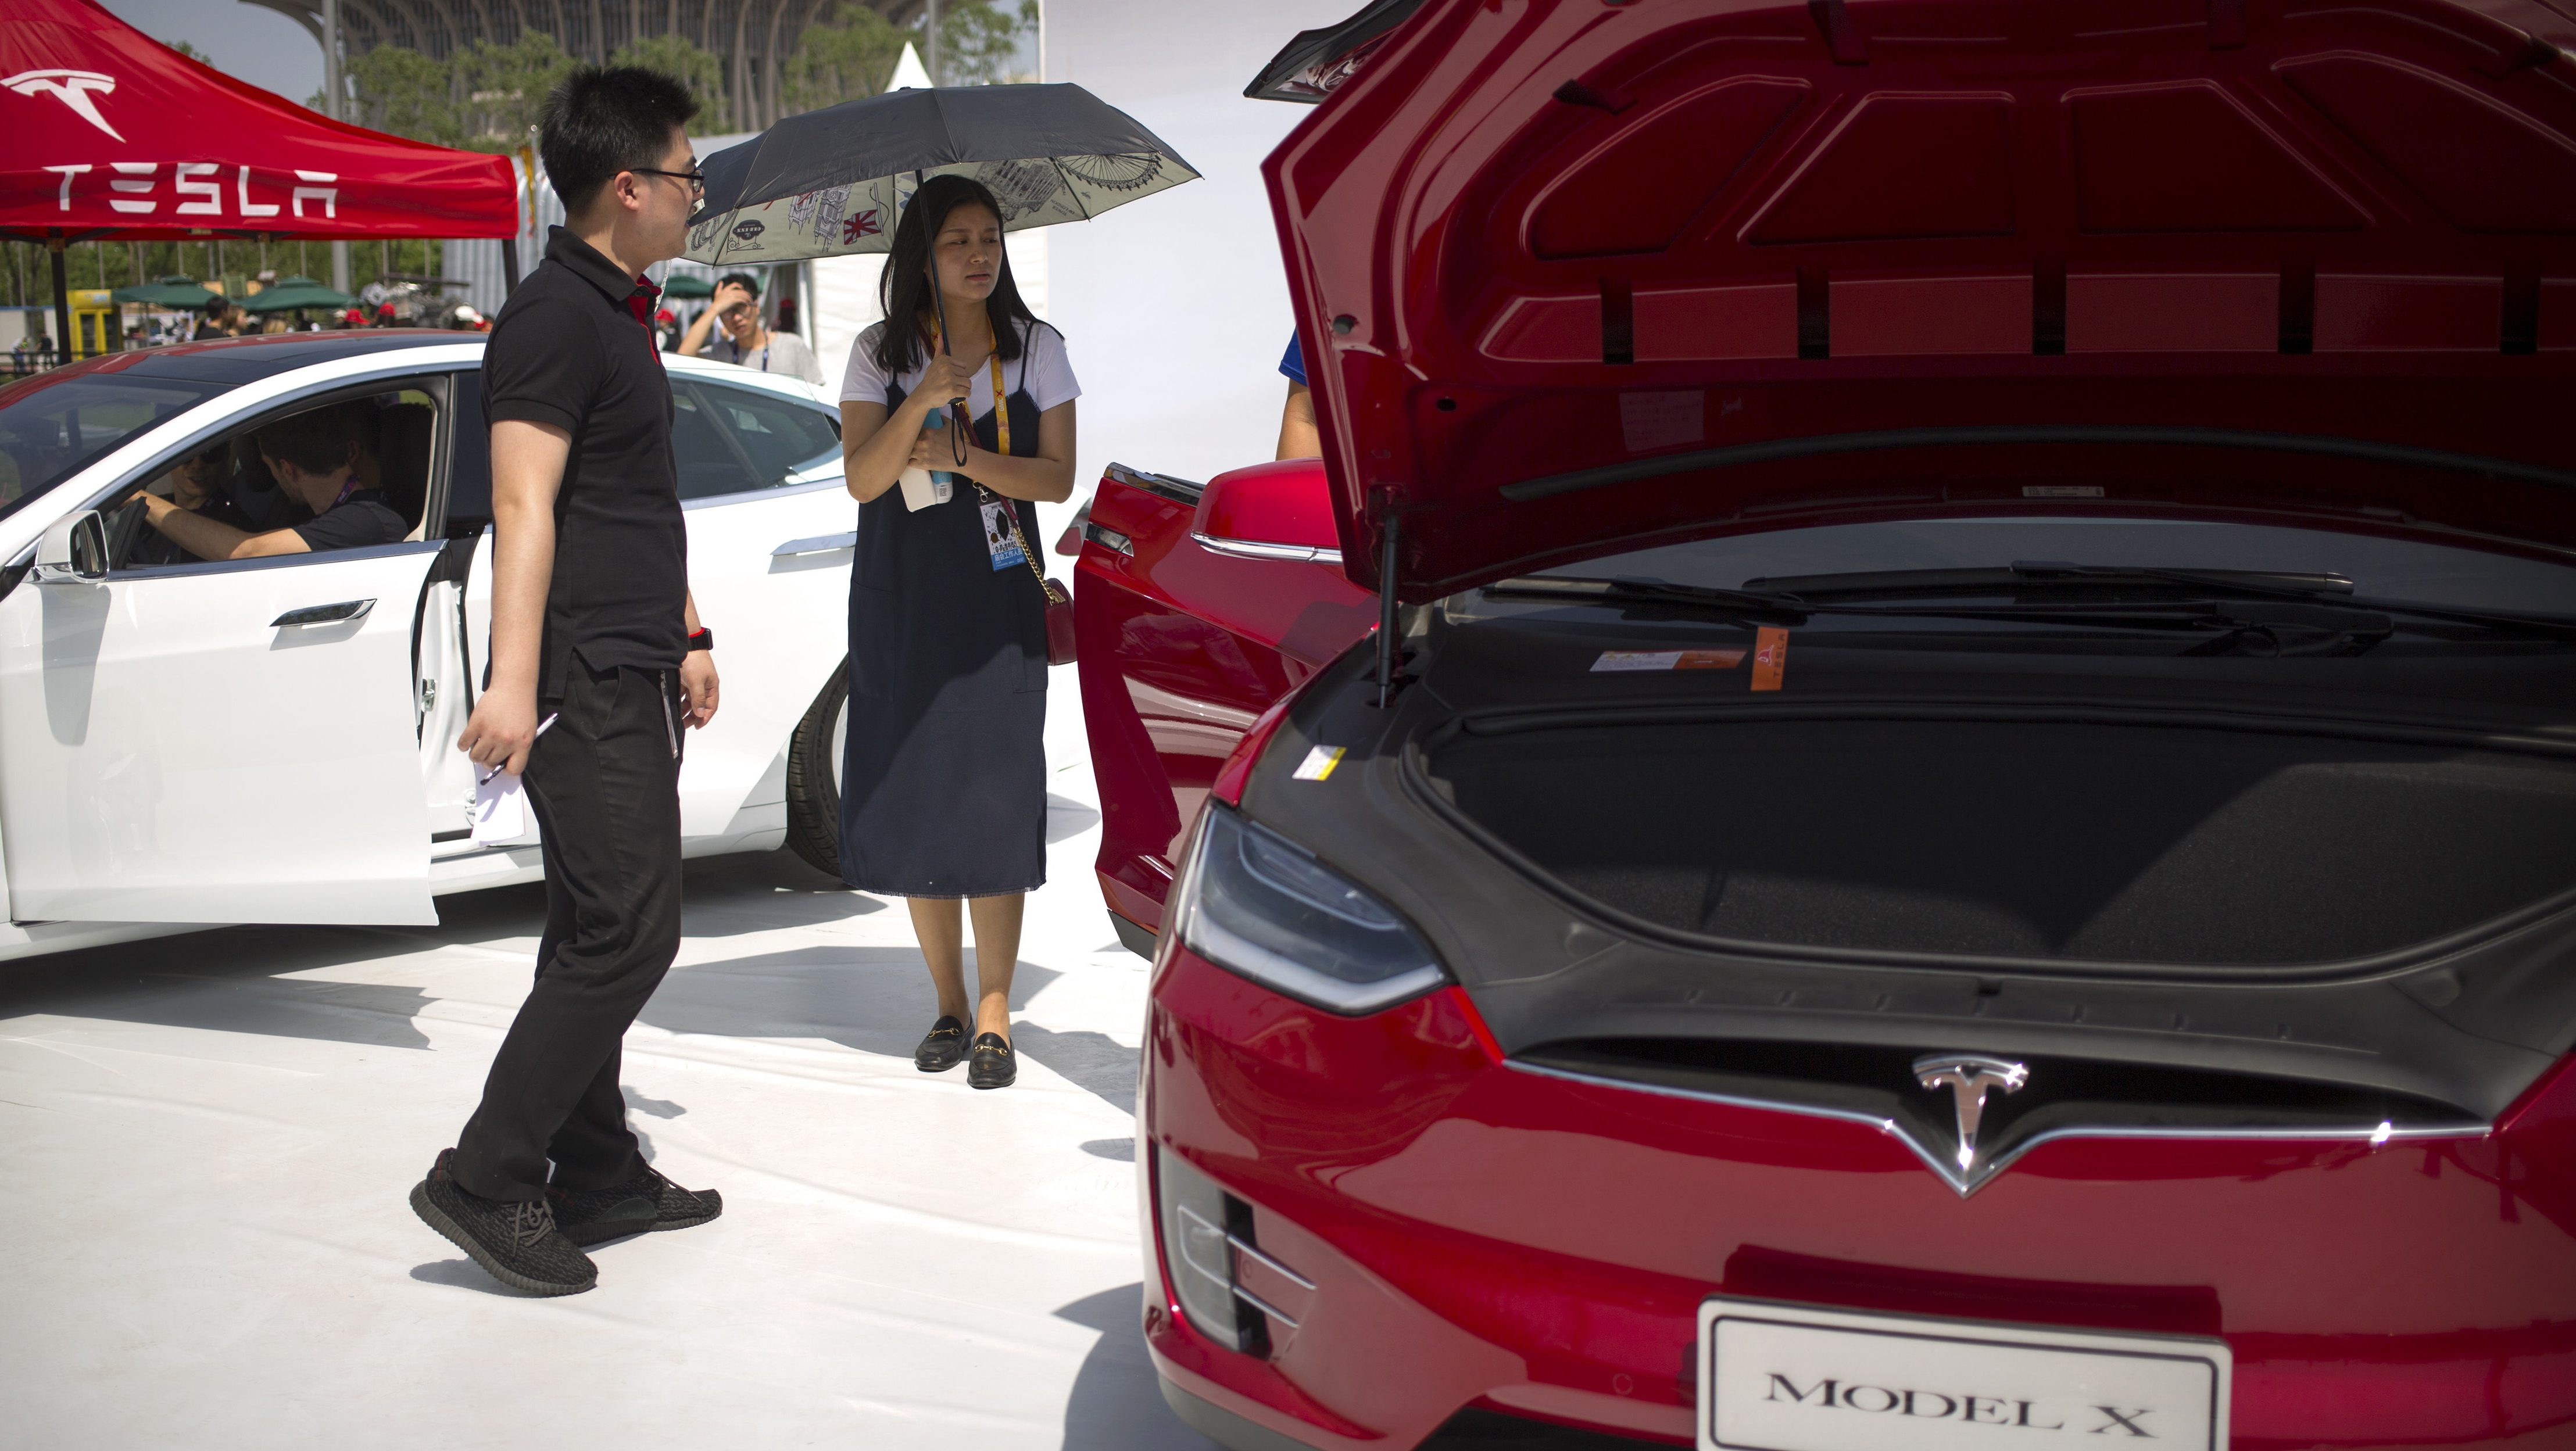 A visitor holds an umbrella as she looks at a Tesla Model X car on display at the G Festival, part of the Global Mobile Internet Conference (GMIC) in Beijing, Saturday, April 29, 2017. (AP Photo/Mark Schiefelbein)